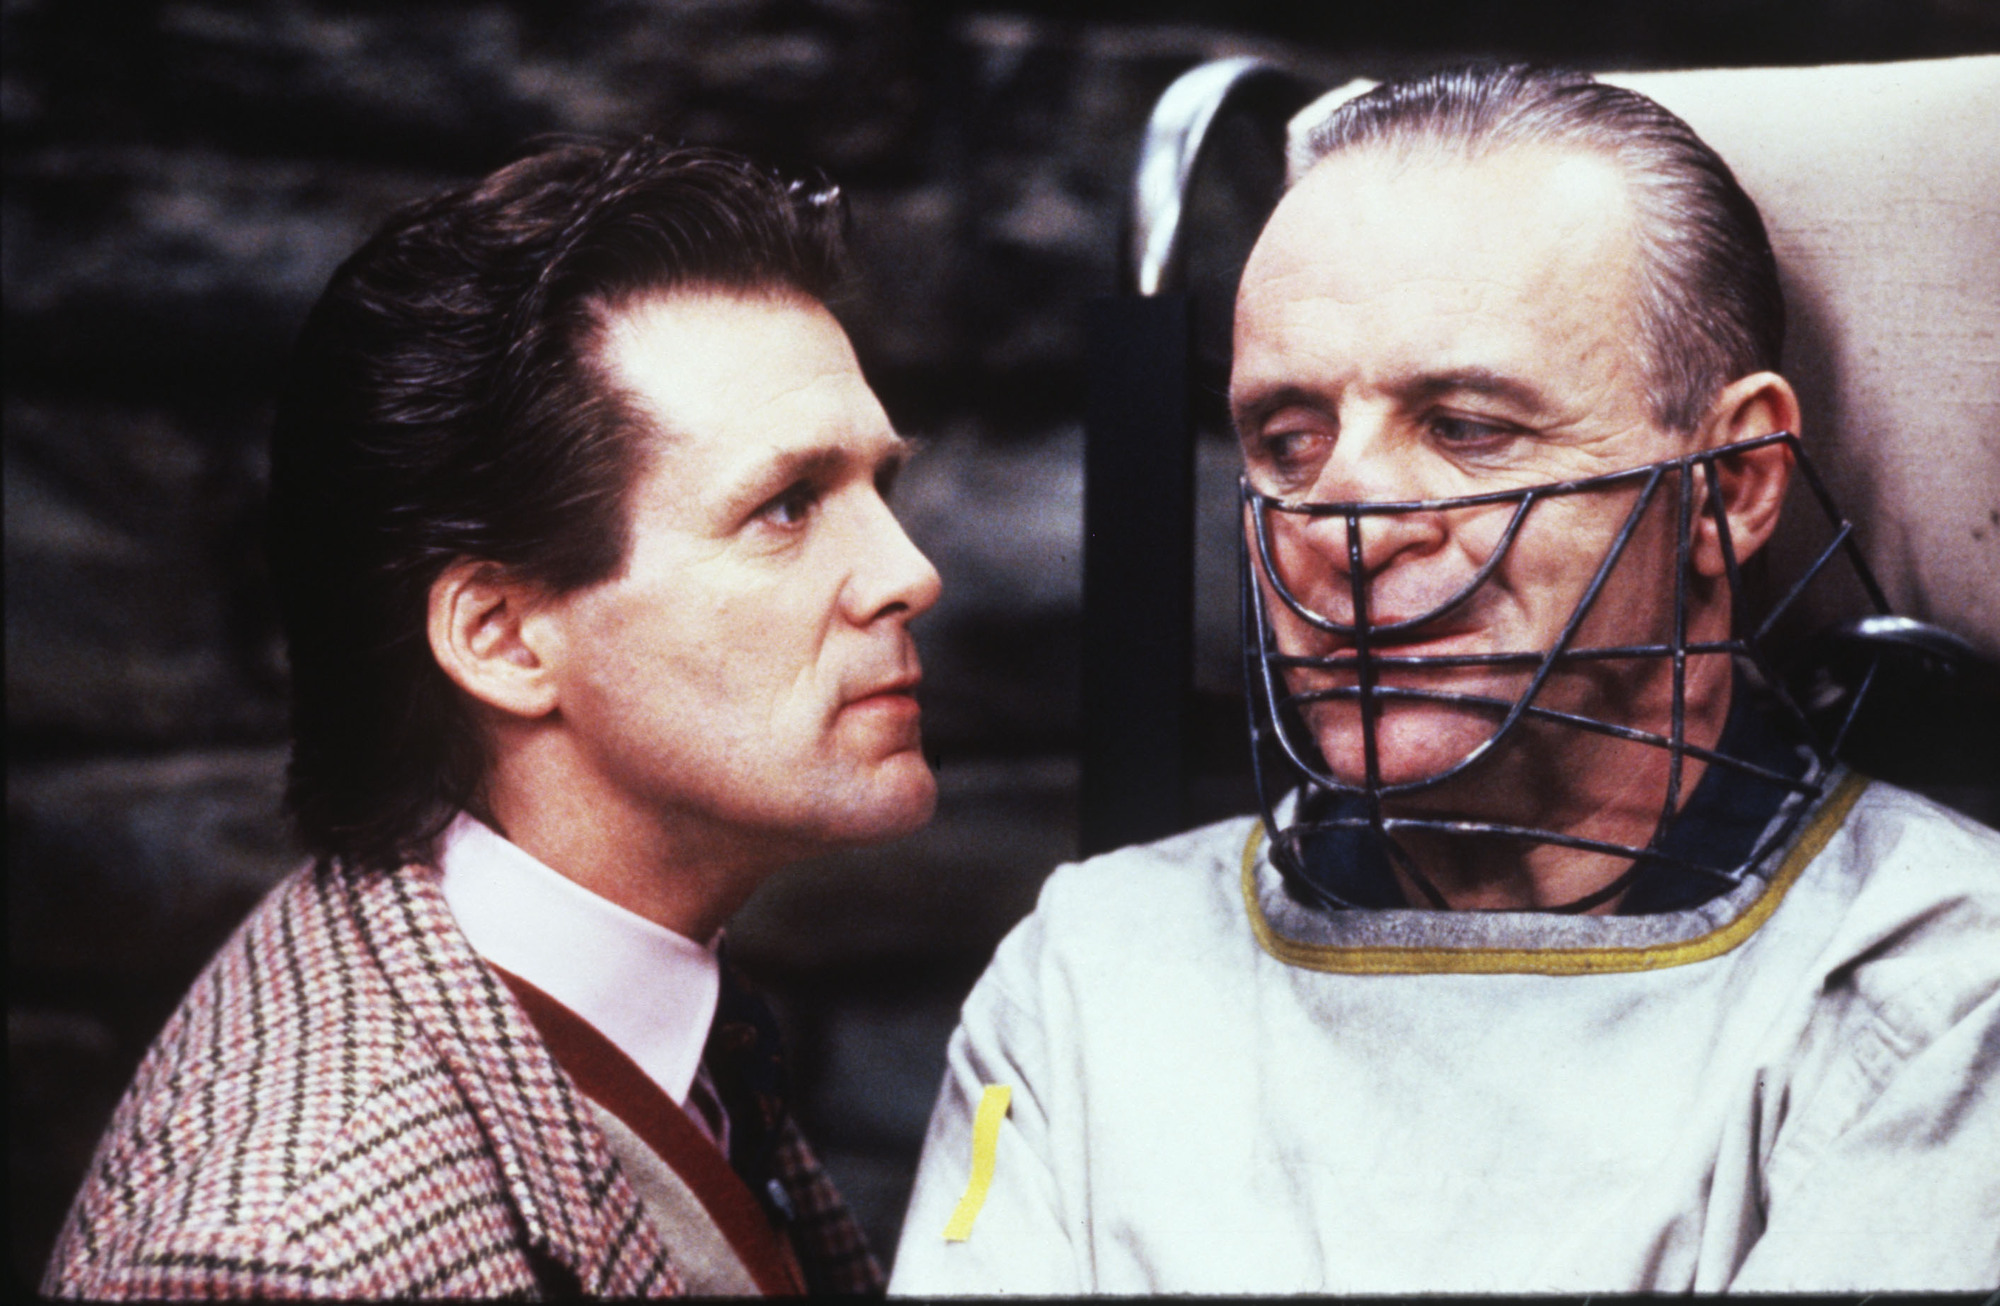 Anthony Heald, left, and Anthony Hopkins in 'The Silence of the Lambs.'